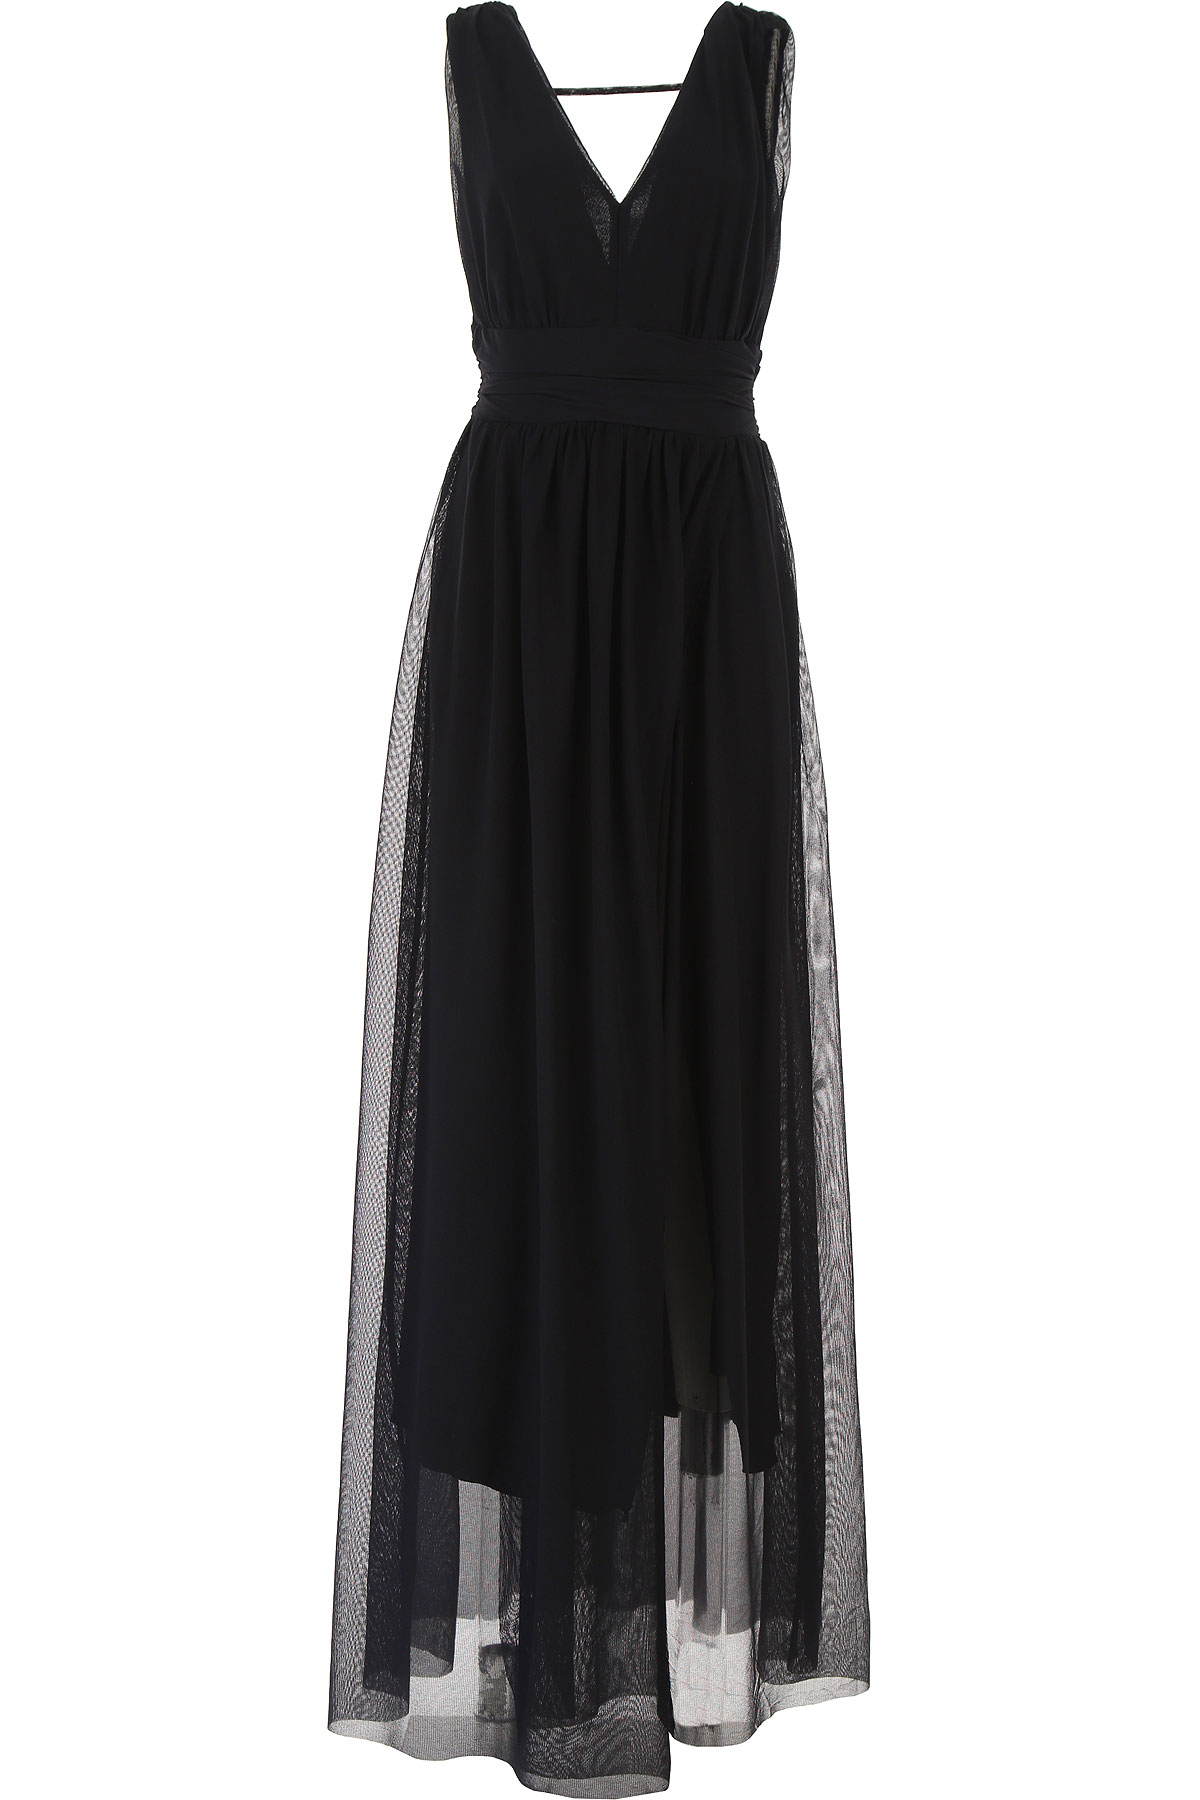 Silvian Heach Dress for Women, Evening Cocktail Party On Sale, Black, polyester, 2019, 4